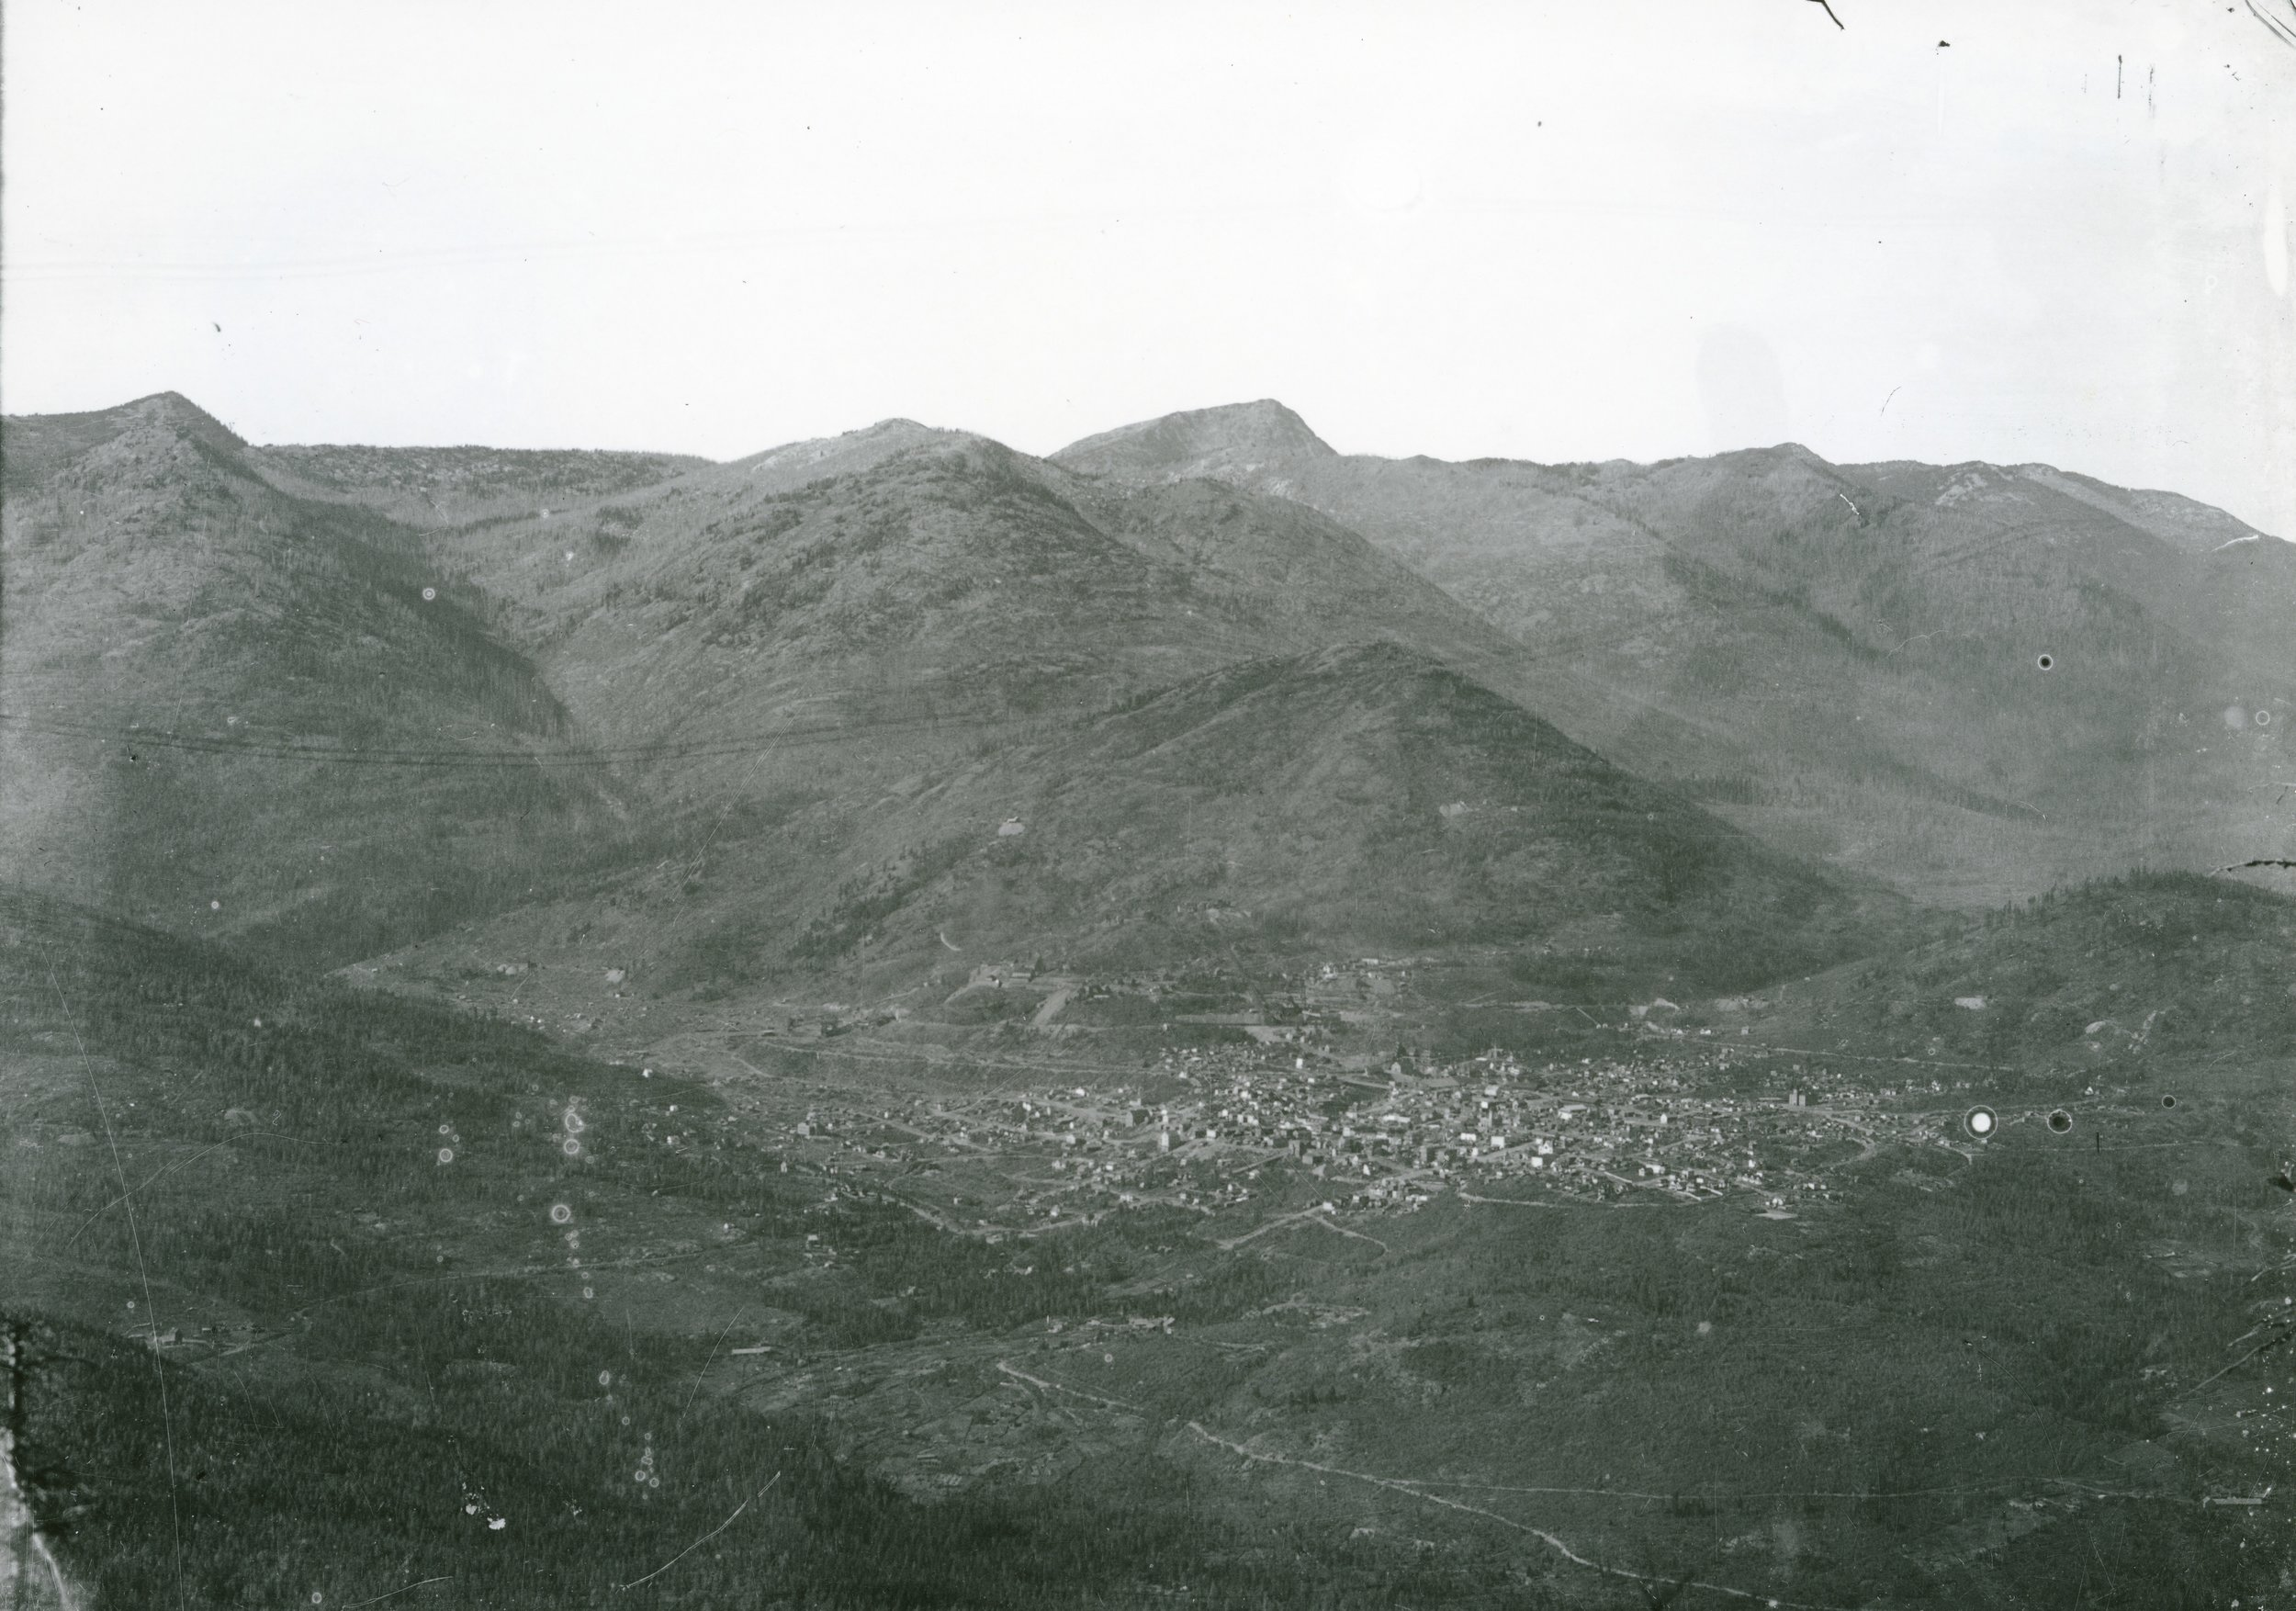 Photo 2311.0072: View of Rossland looking over the city from the south, circa 1902. Note the lack of trees on the surrounding mountains from the extensive logging operations.